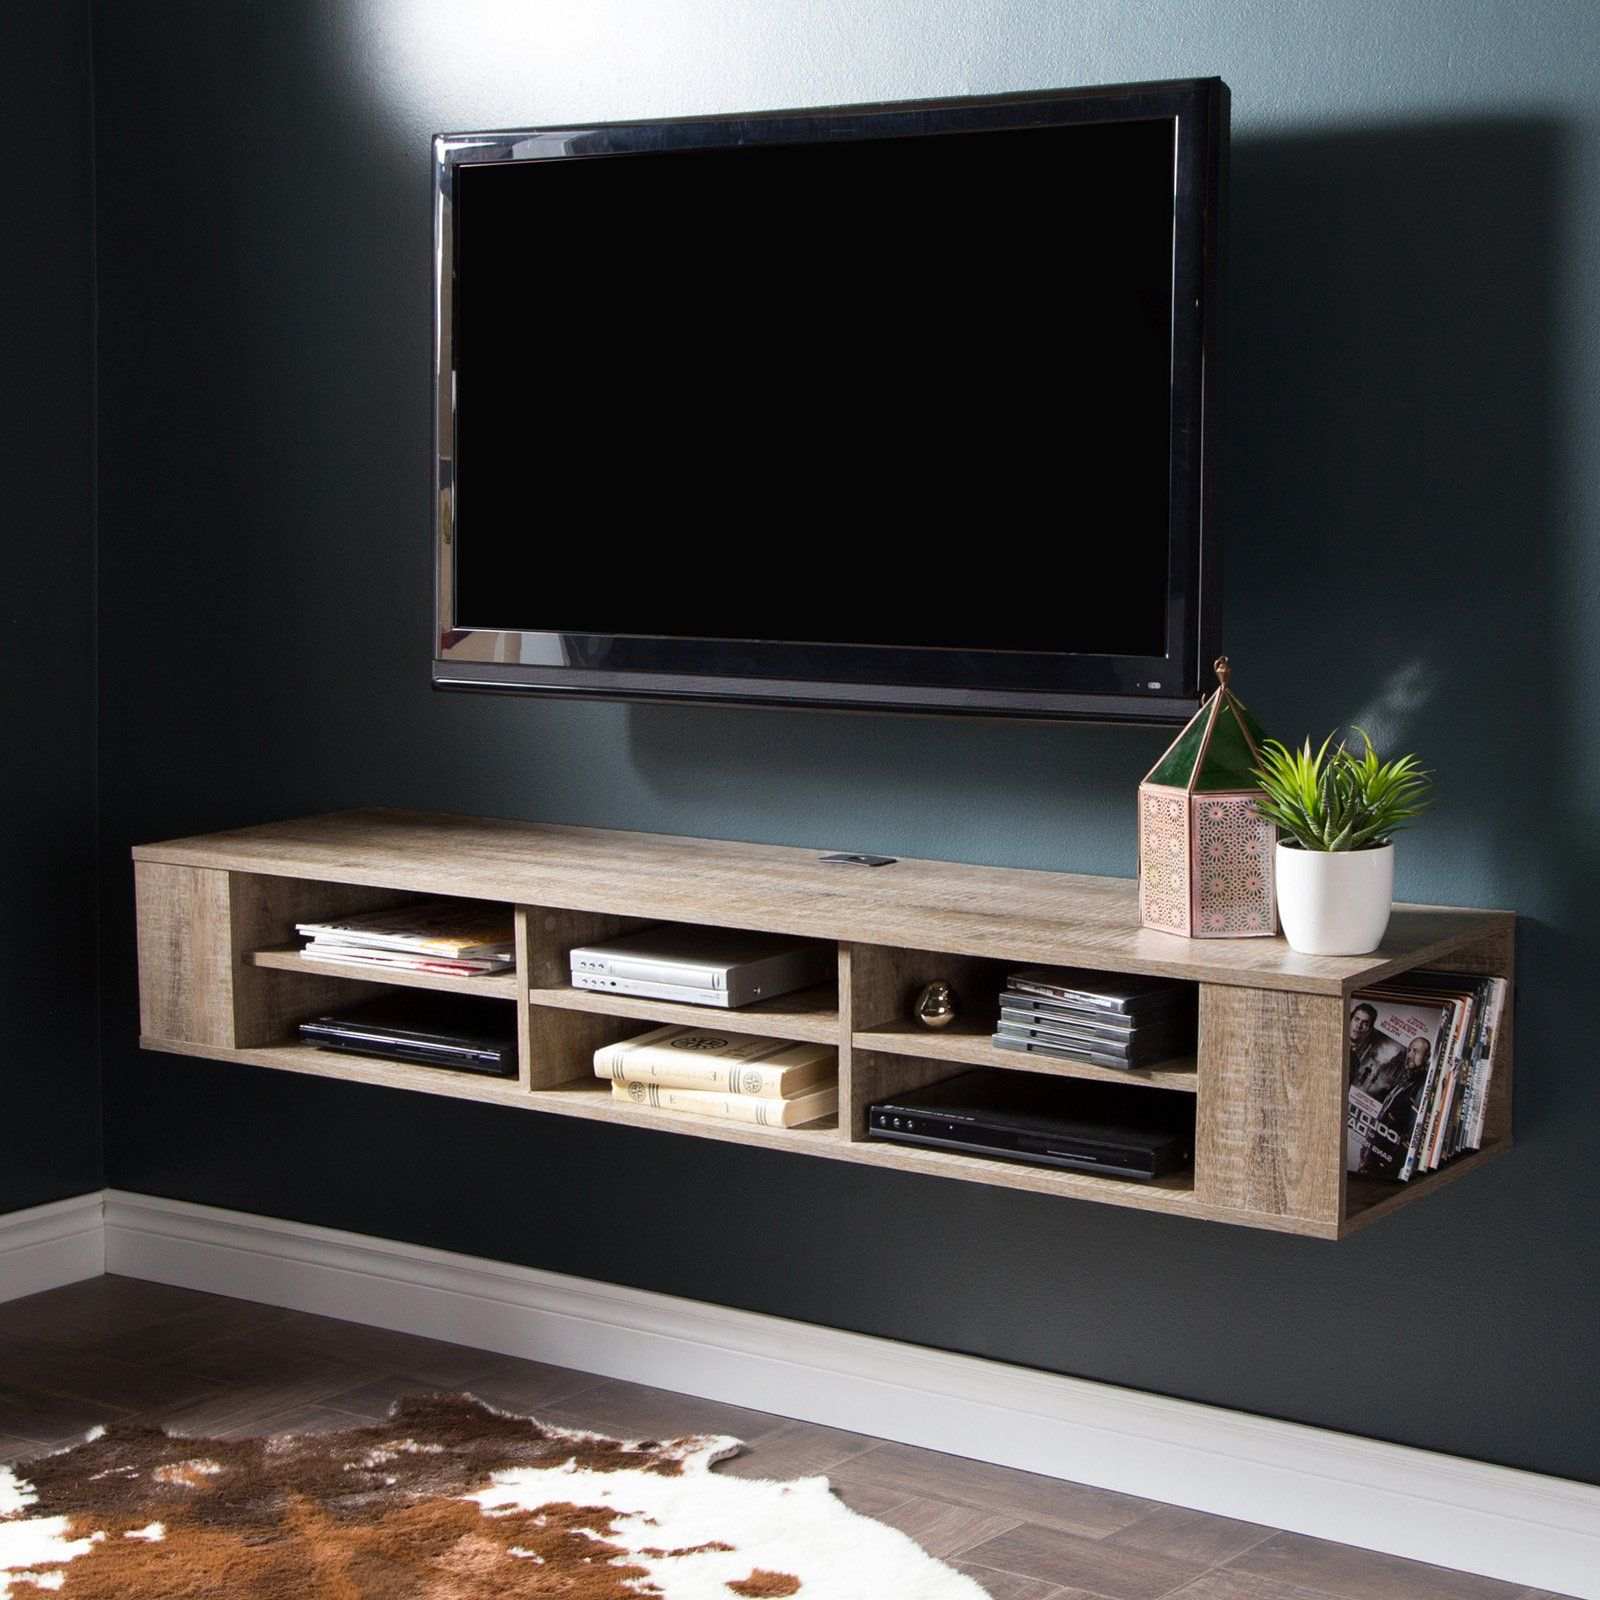 Shore City Life 48 in. Wall Mounted Media Console - 9062675